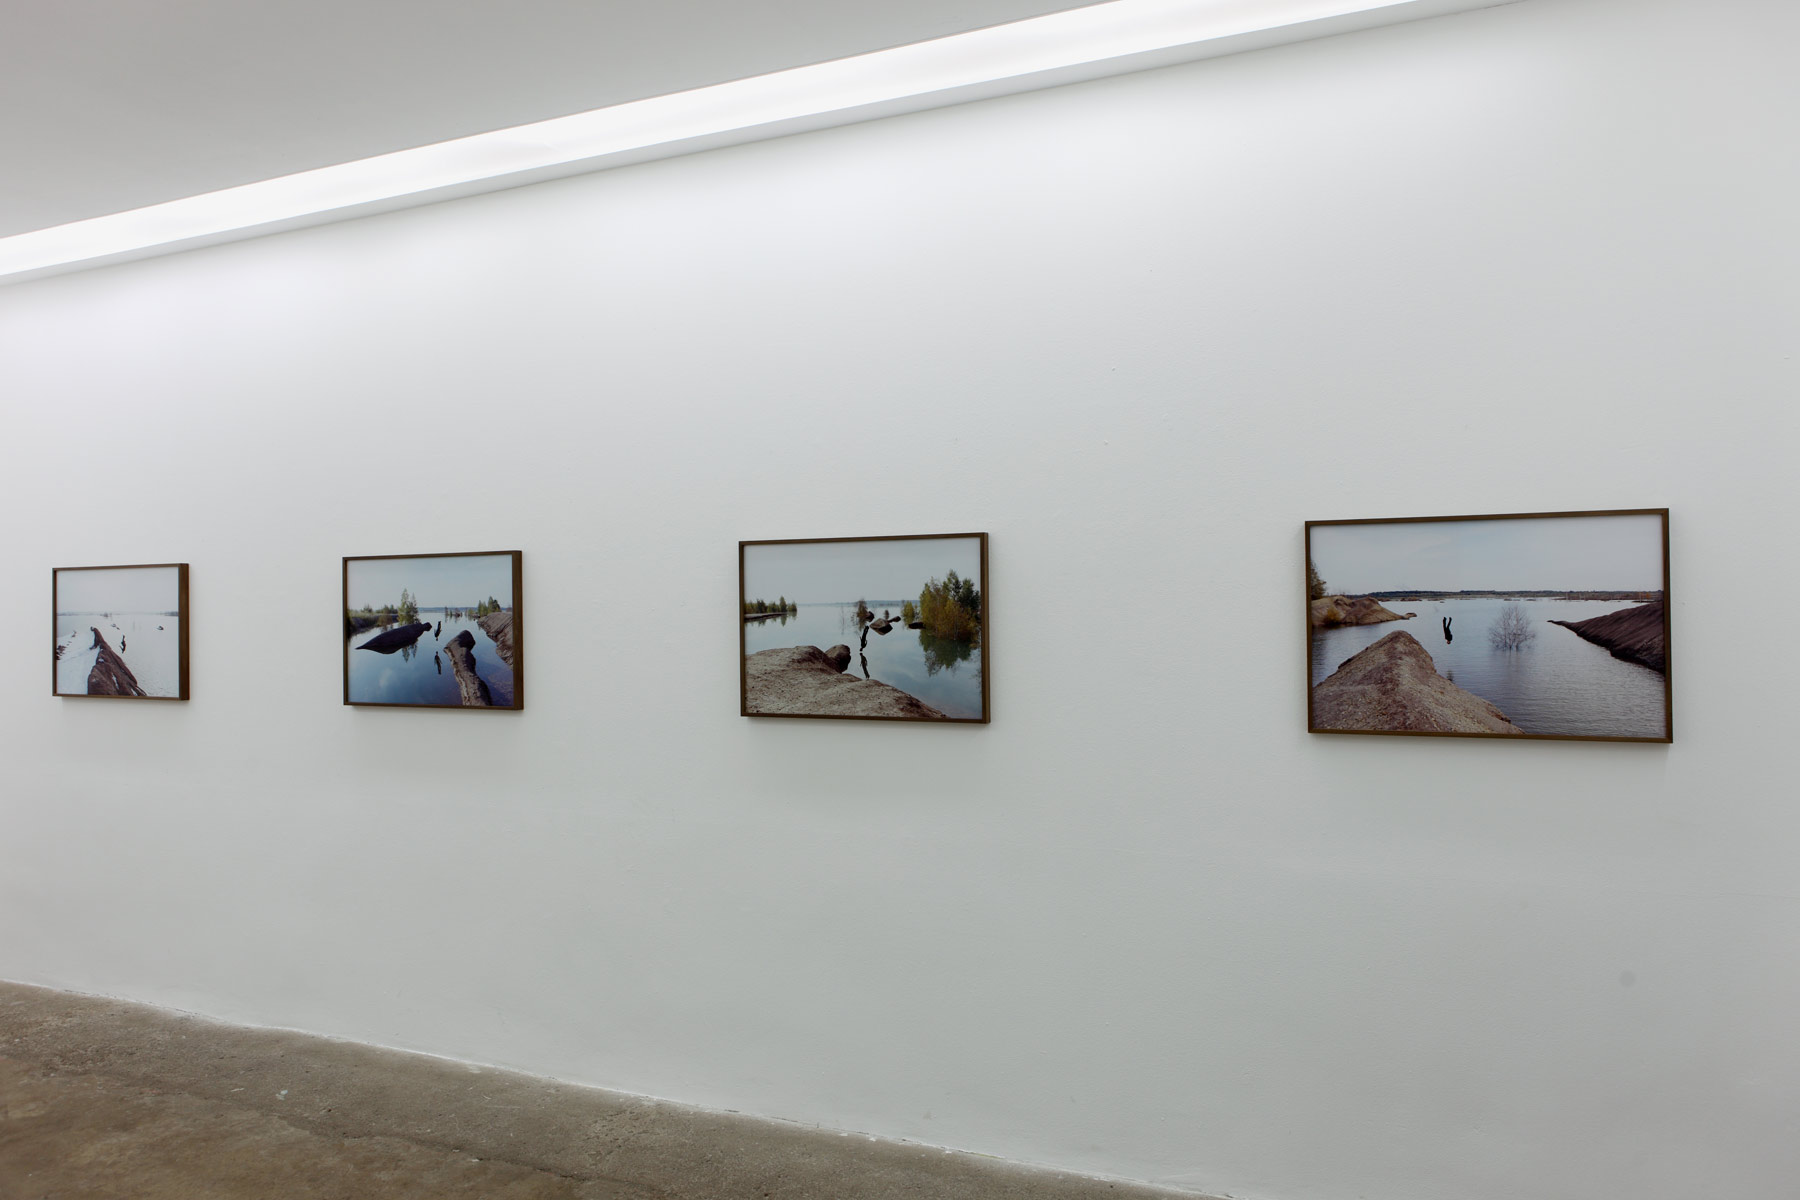 Stumpf-Installation-View-4,-Islands,-2014,-Galerie-Kleindienst,-Leipzig.jpg